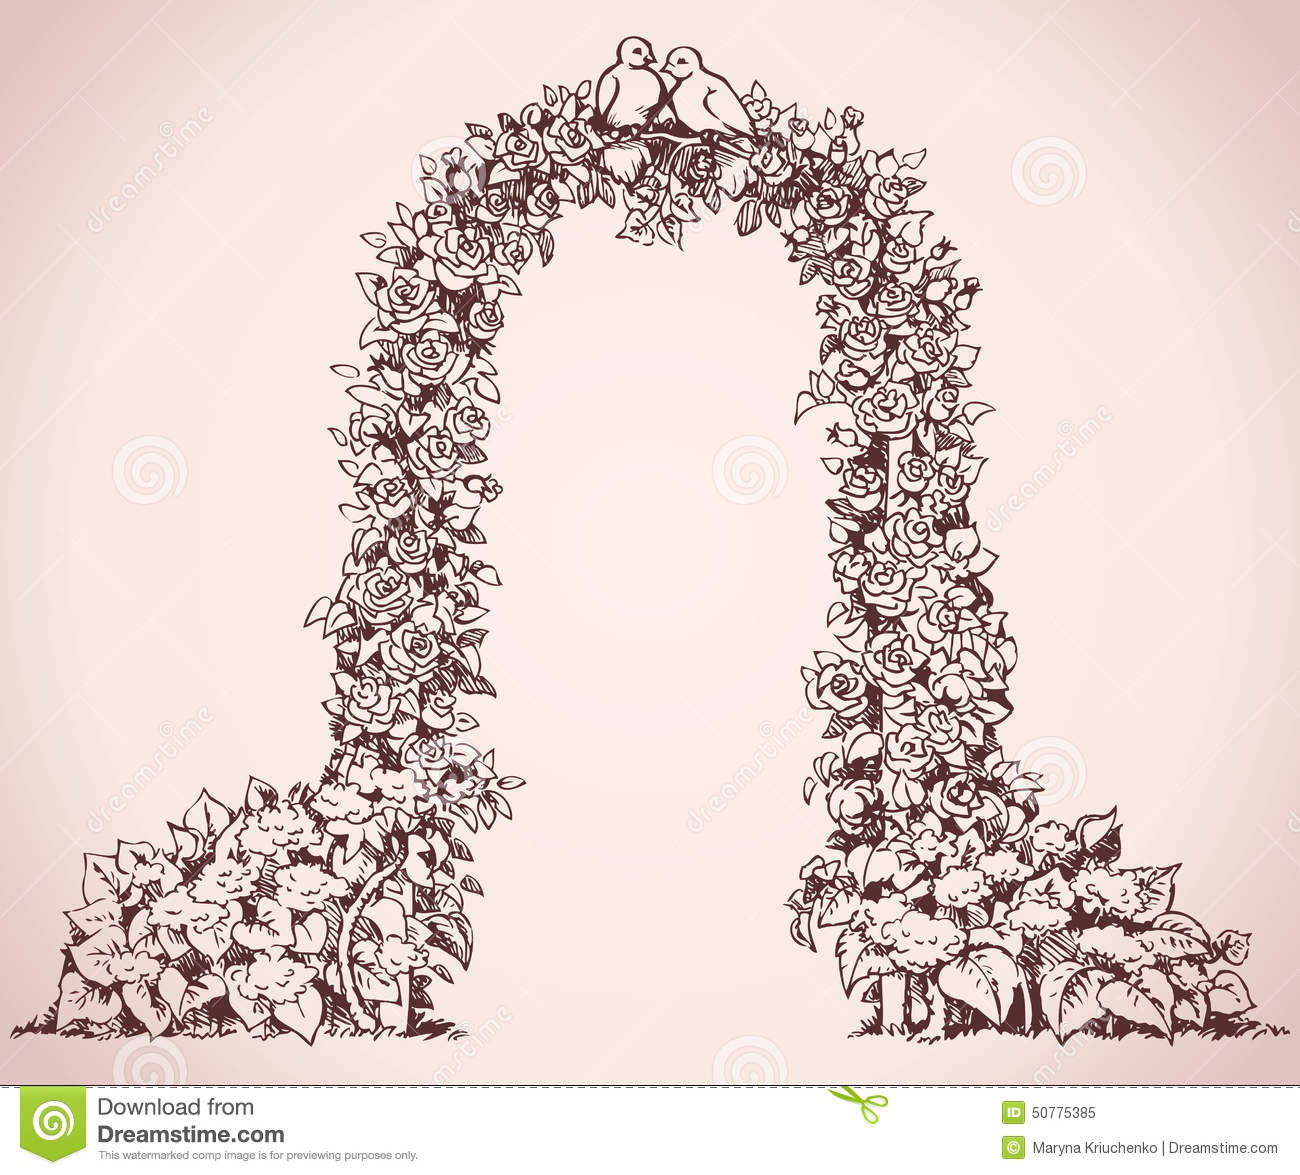 Arch Climbers clipart #15, Download drawings